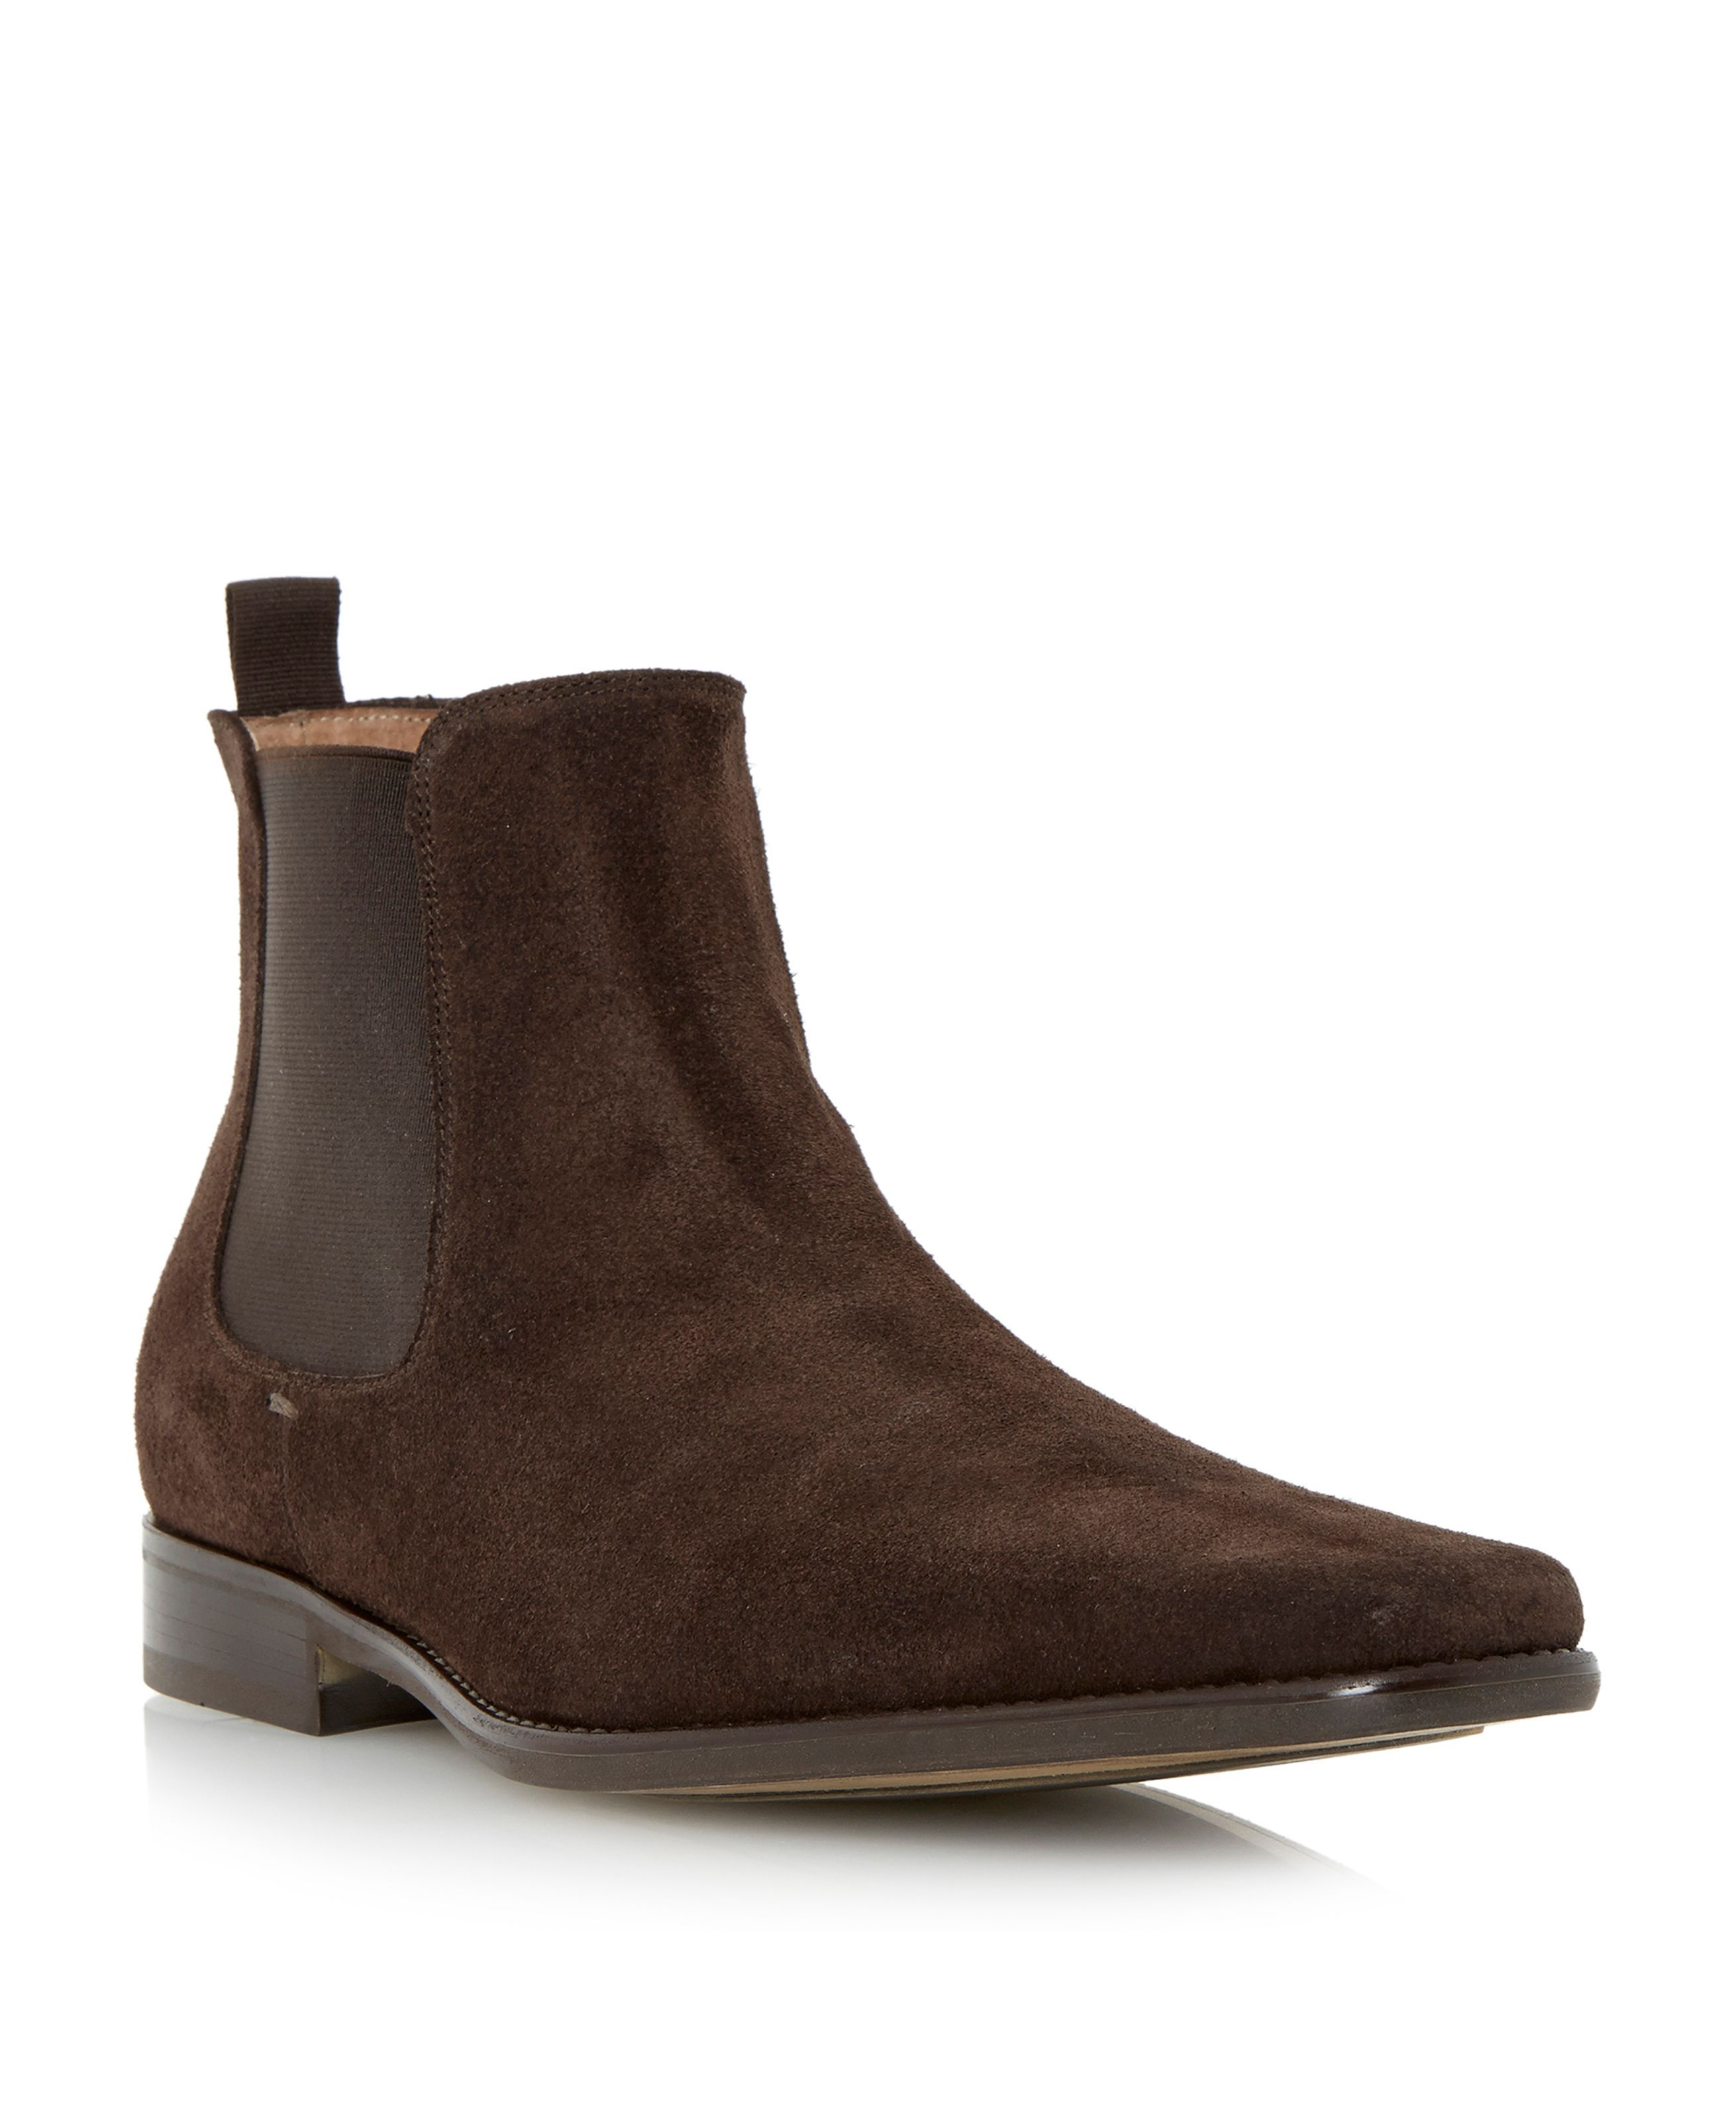 a5aa906f79d Roland Cartier Clarky Suede Chelsea Boots, Brown   well 1